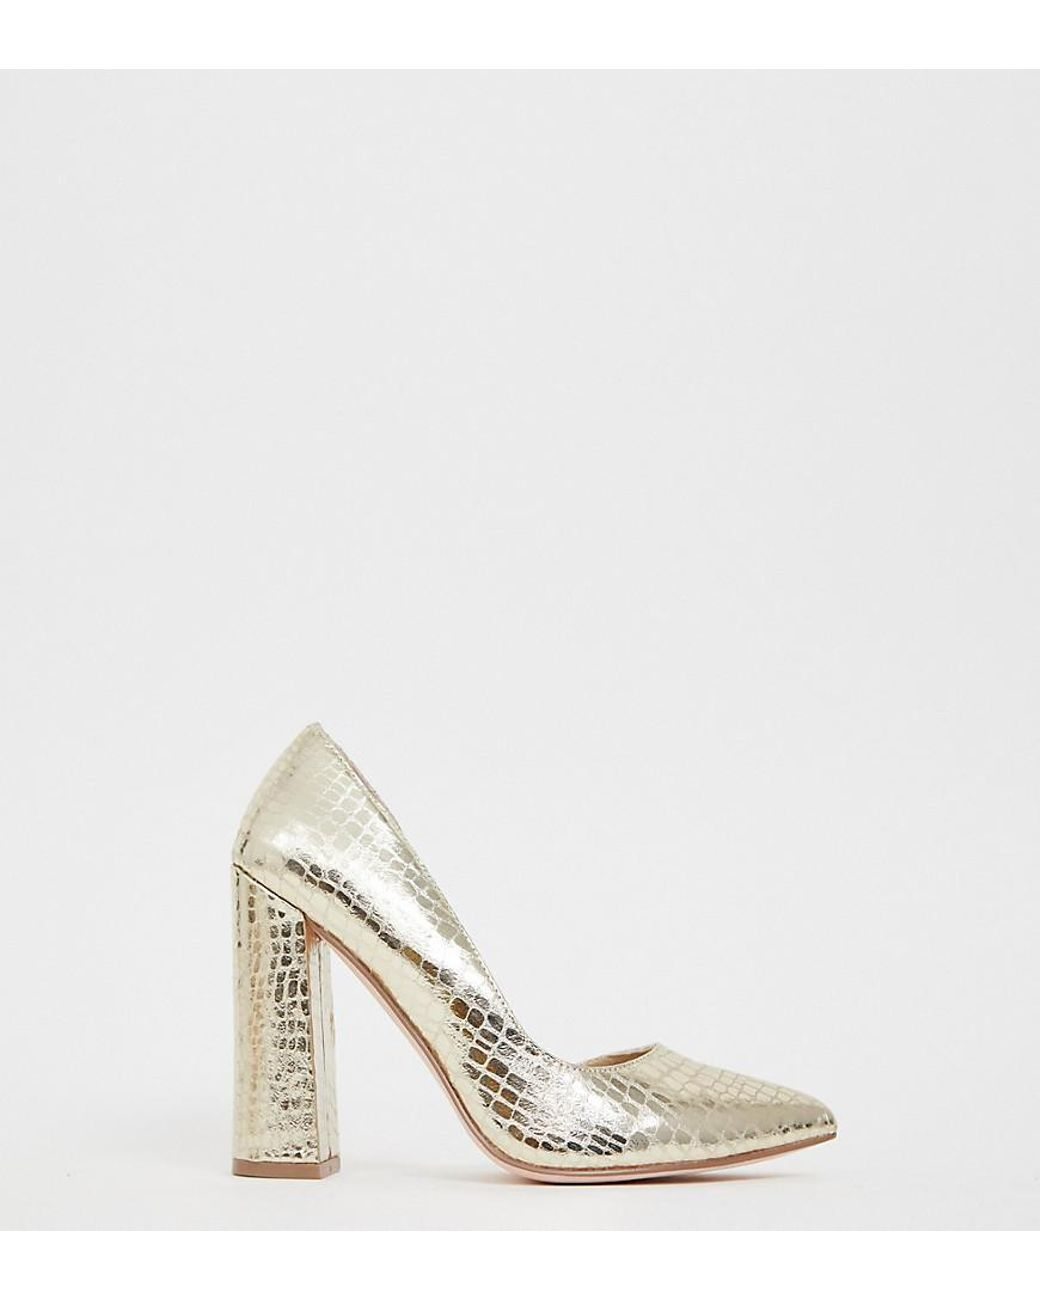 Wide Fit Walter D Orsay High Heels In Champagne Croc